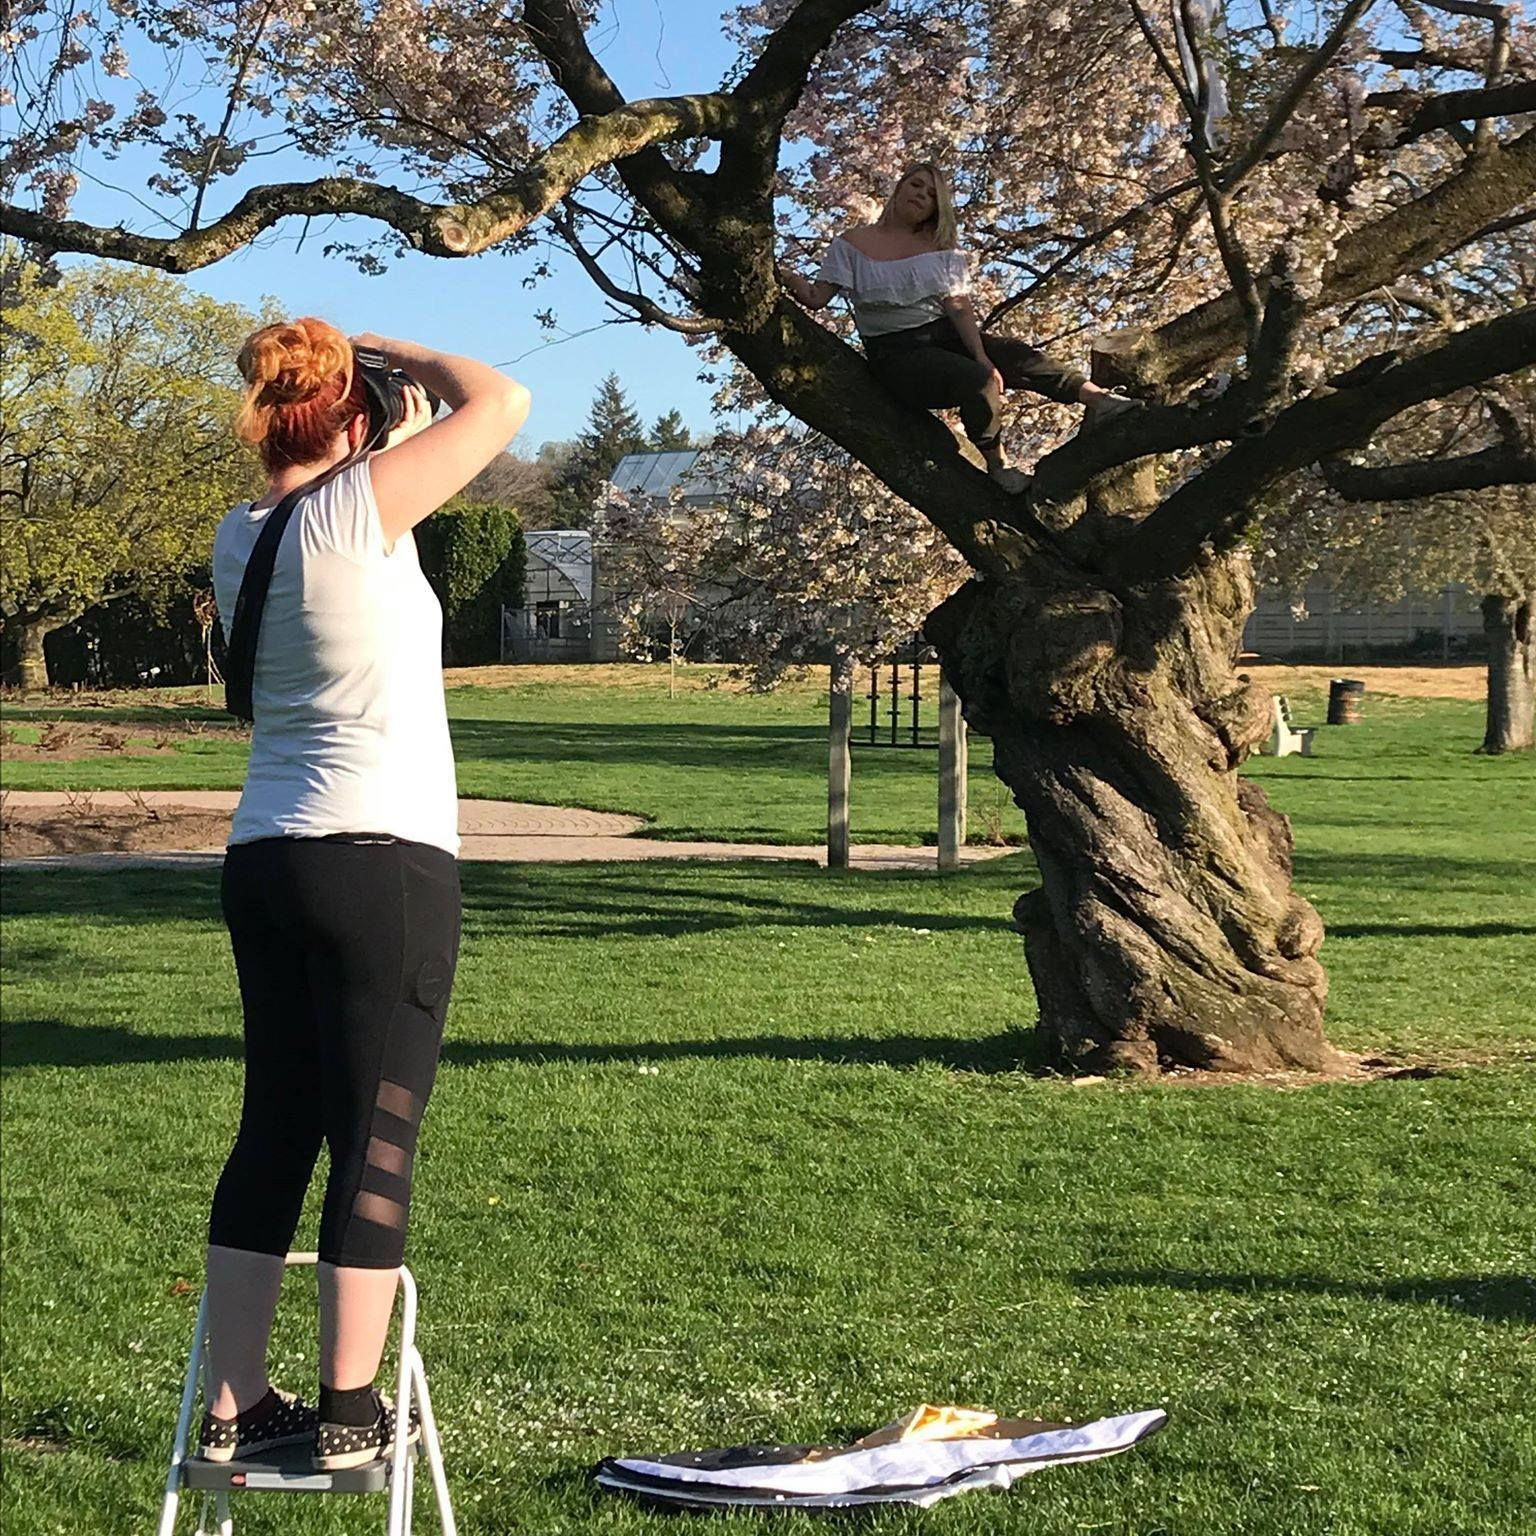 Cherry Blossom shooting in Gage Park - Hamilton (Photo by Sarah Marie Photography)